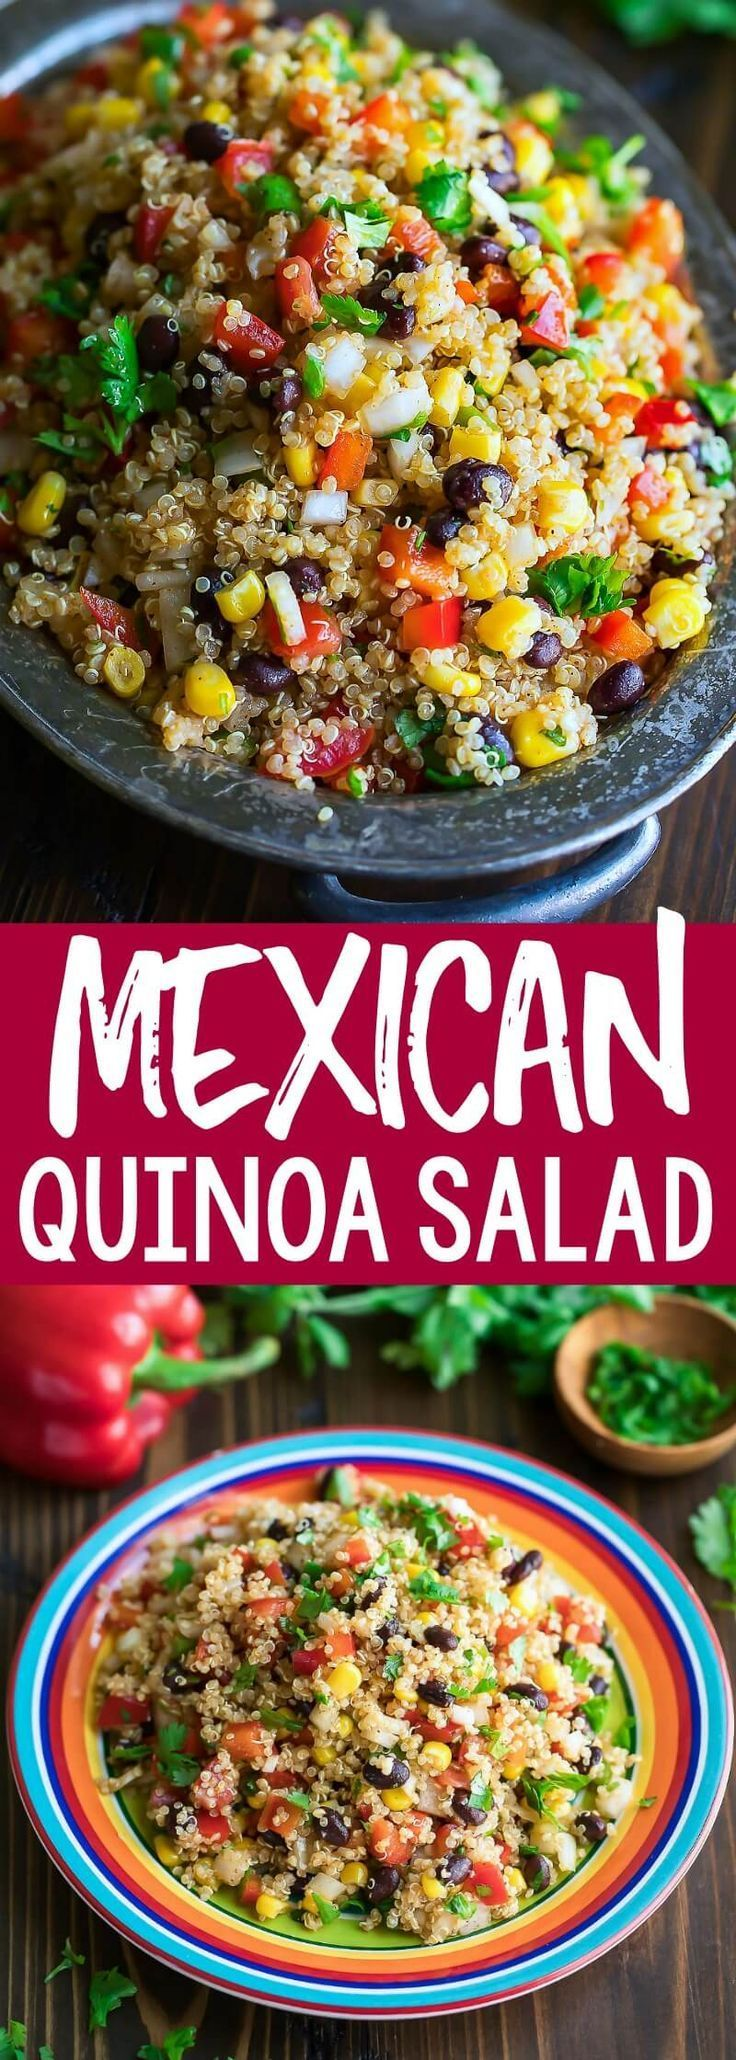 This healthy Mexican Quinoa Salad is a quick, easy, and gloriously make-ahead dish! Tossed in a speedy homemade chili lime dressing, this fiesta quinoa bowl is full of flavor!